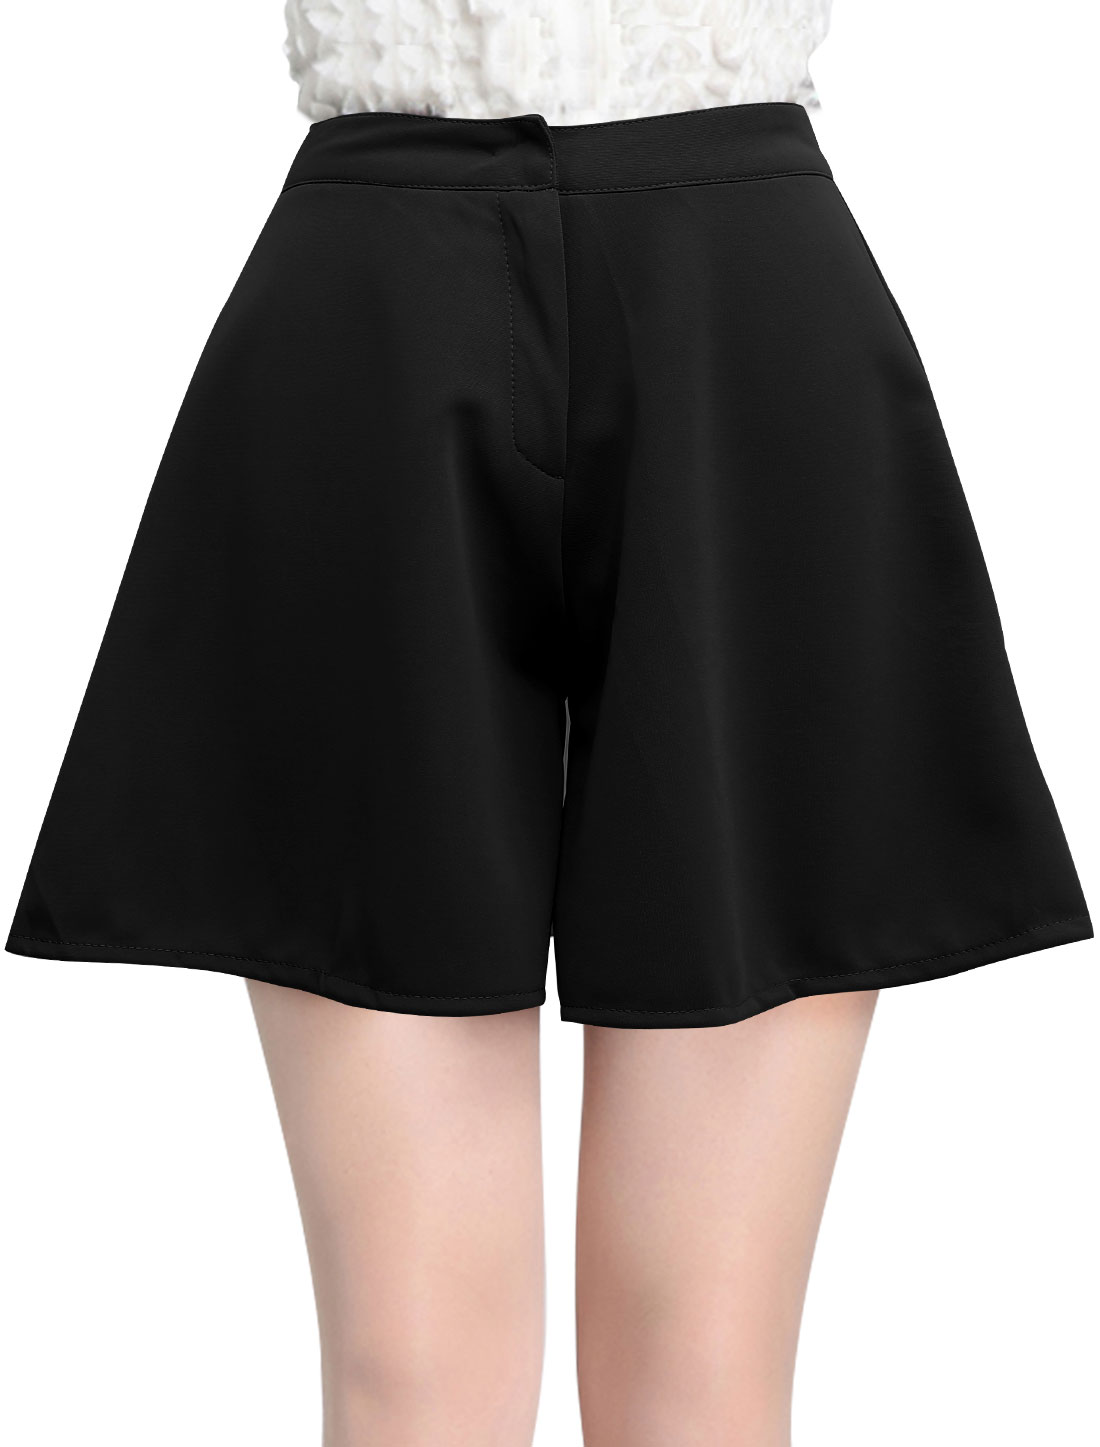 Lady High Waist Zip Front Loose Fit Casual Shorts Black S